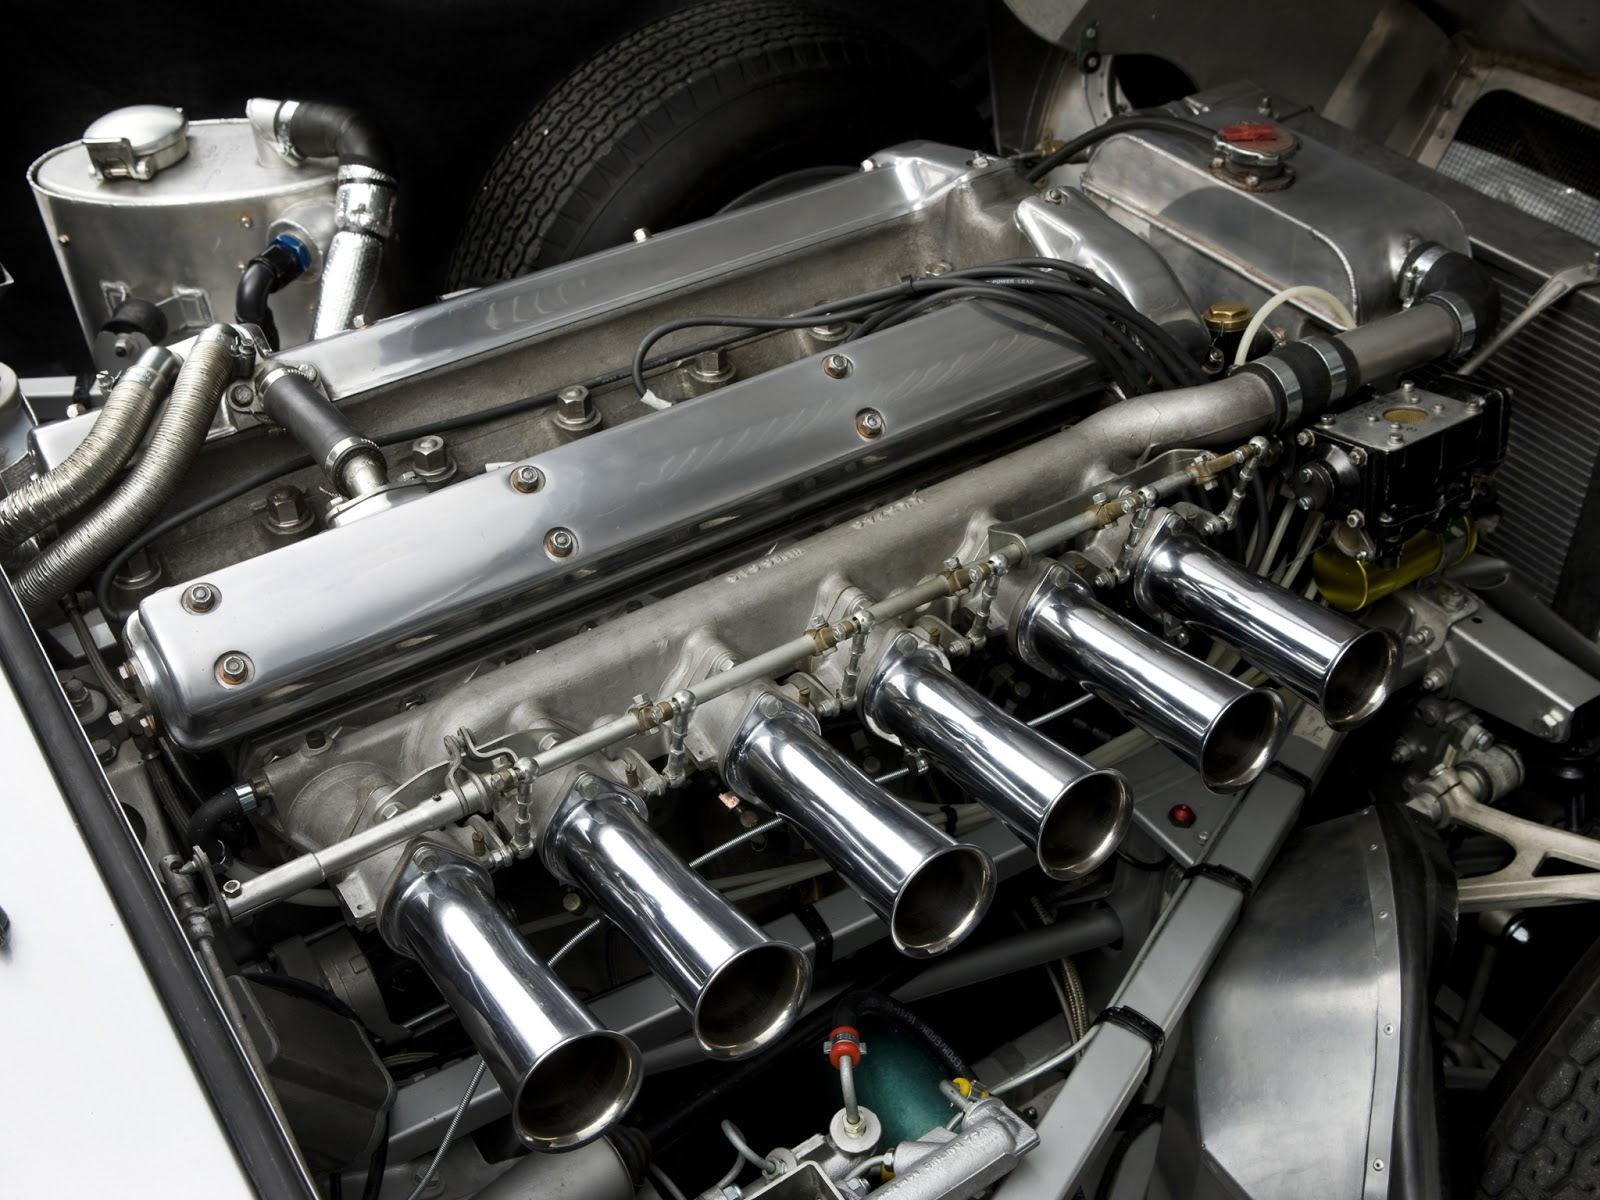 swap the upgraded twin in specialize racing turbo by from built l depot hills engine they auburn engines was michigan arrow with a jaguar who viper